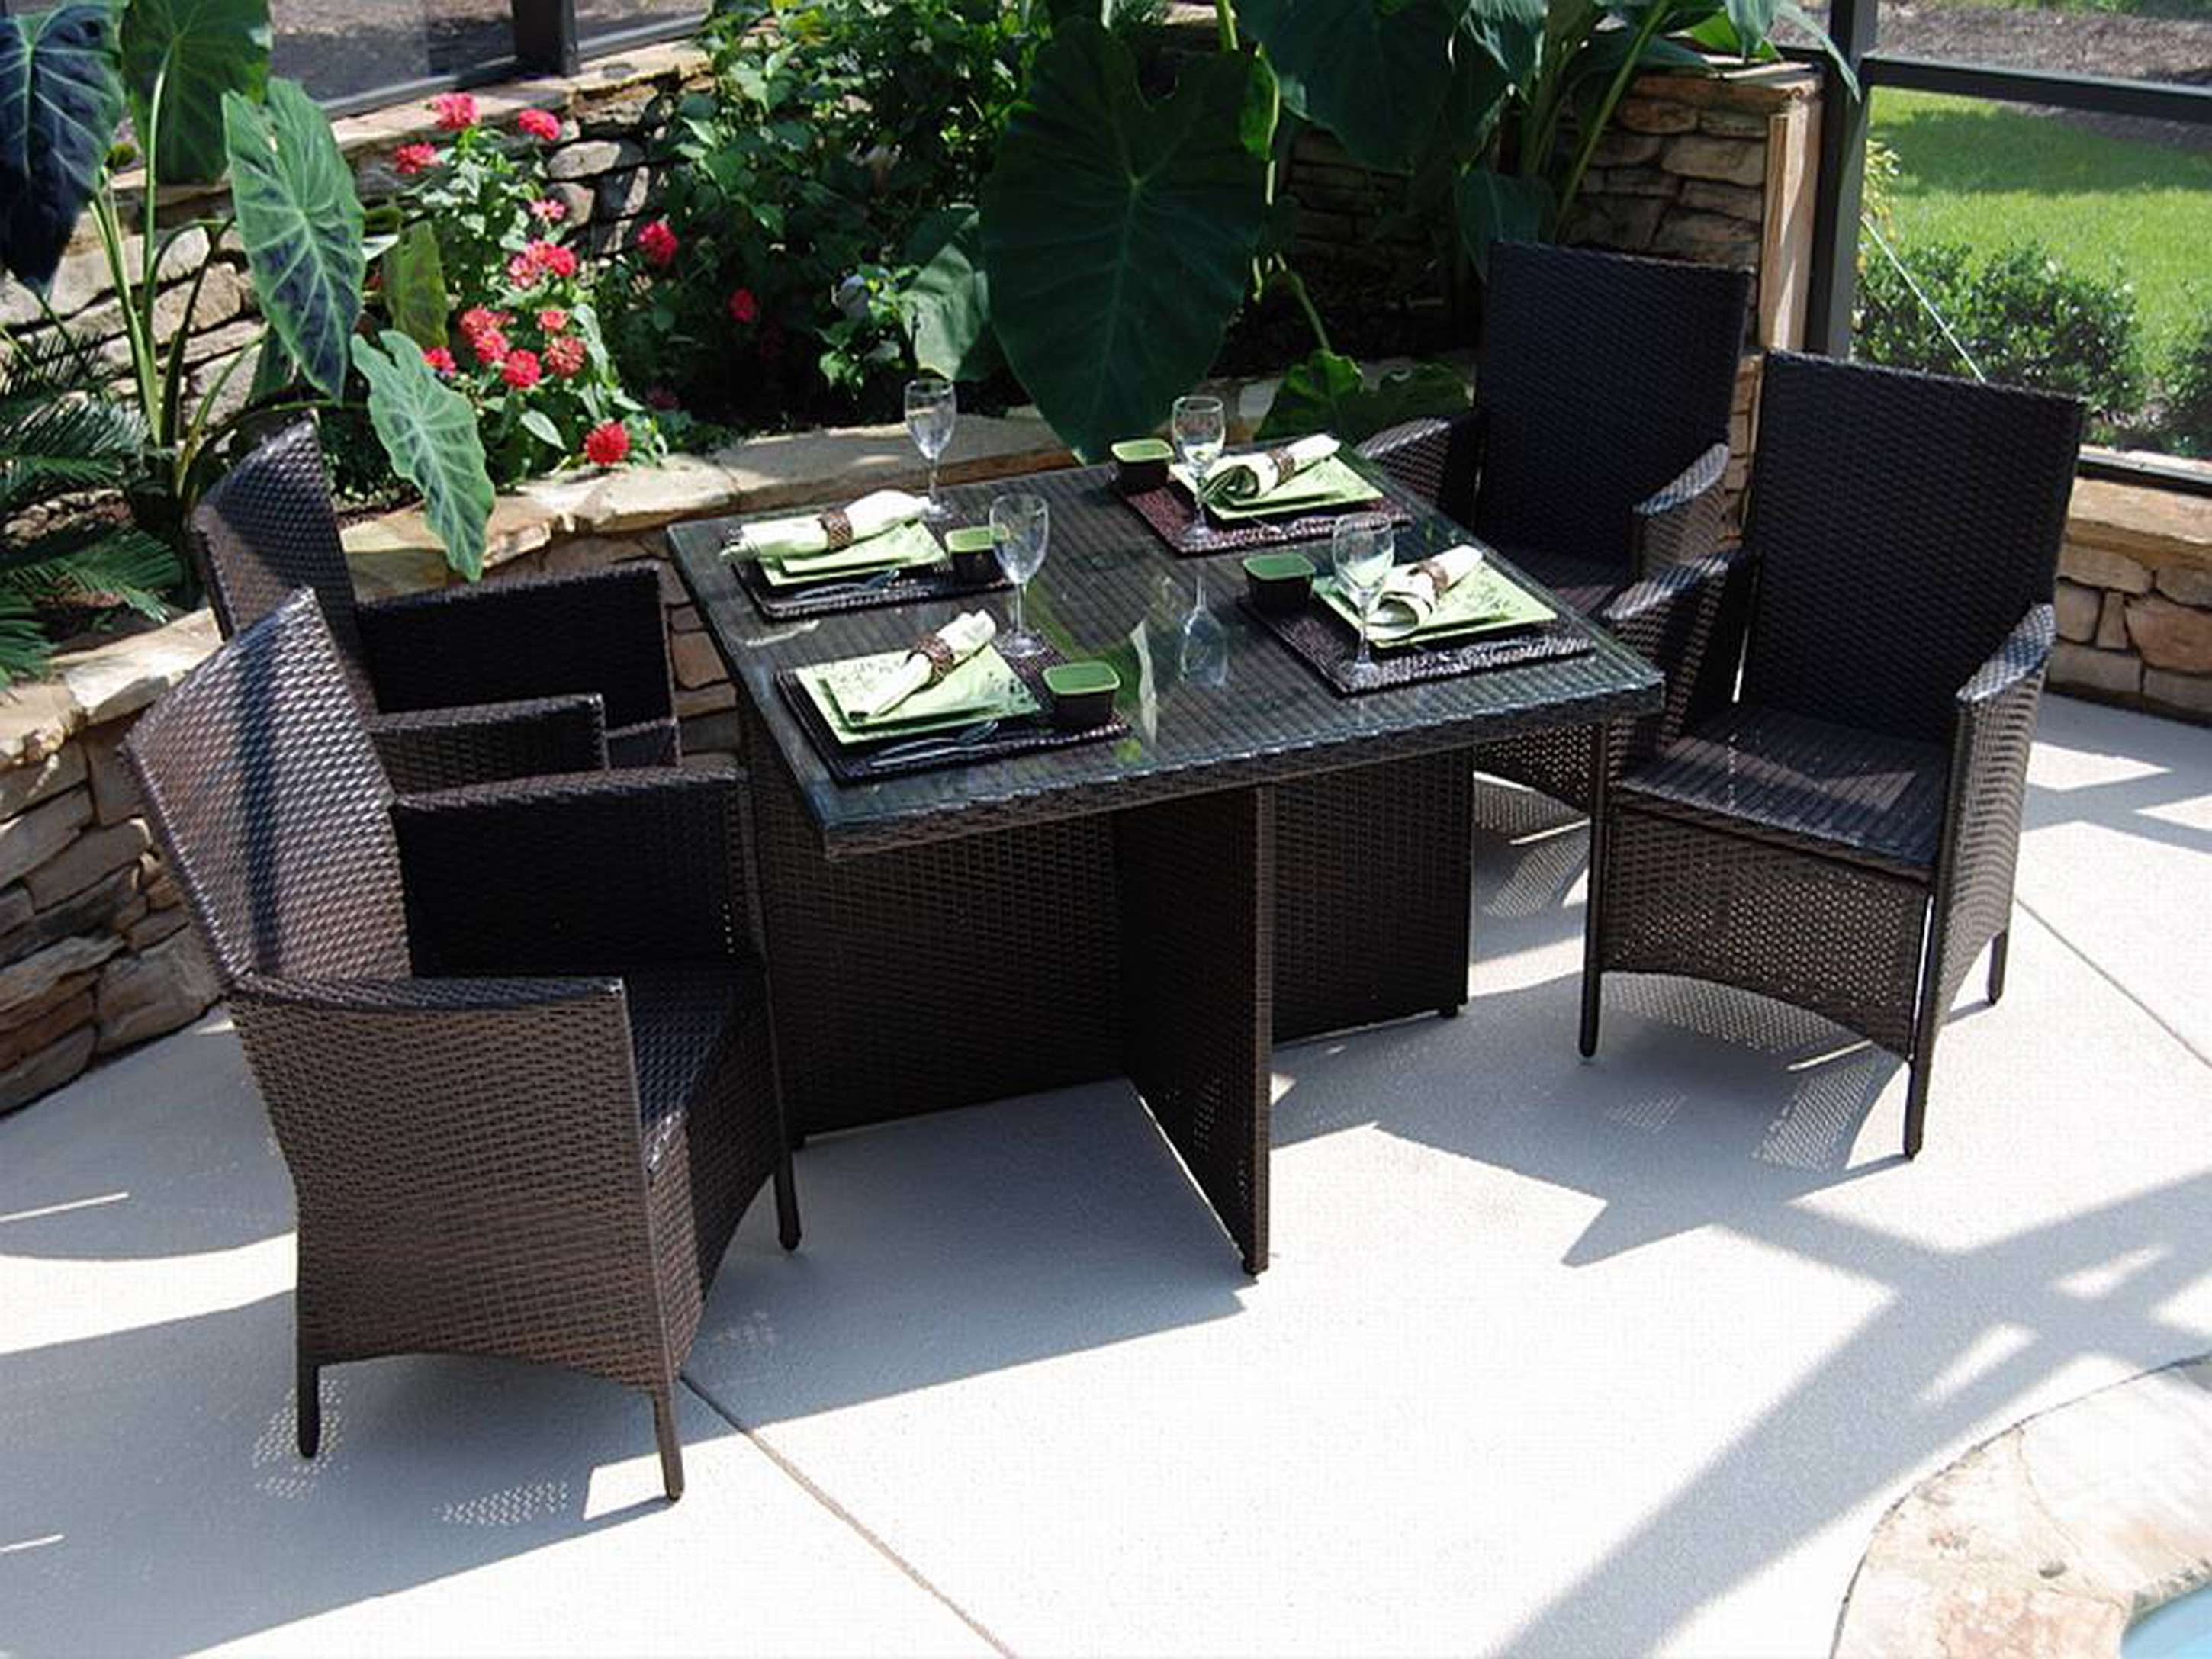 Amazing Outdoor Dining Set Idea With Black Table With Glasses Red Flowers And Black Chairs Admirable Outdoor Dining Set Ideas (View 24 of 28)